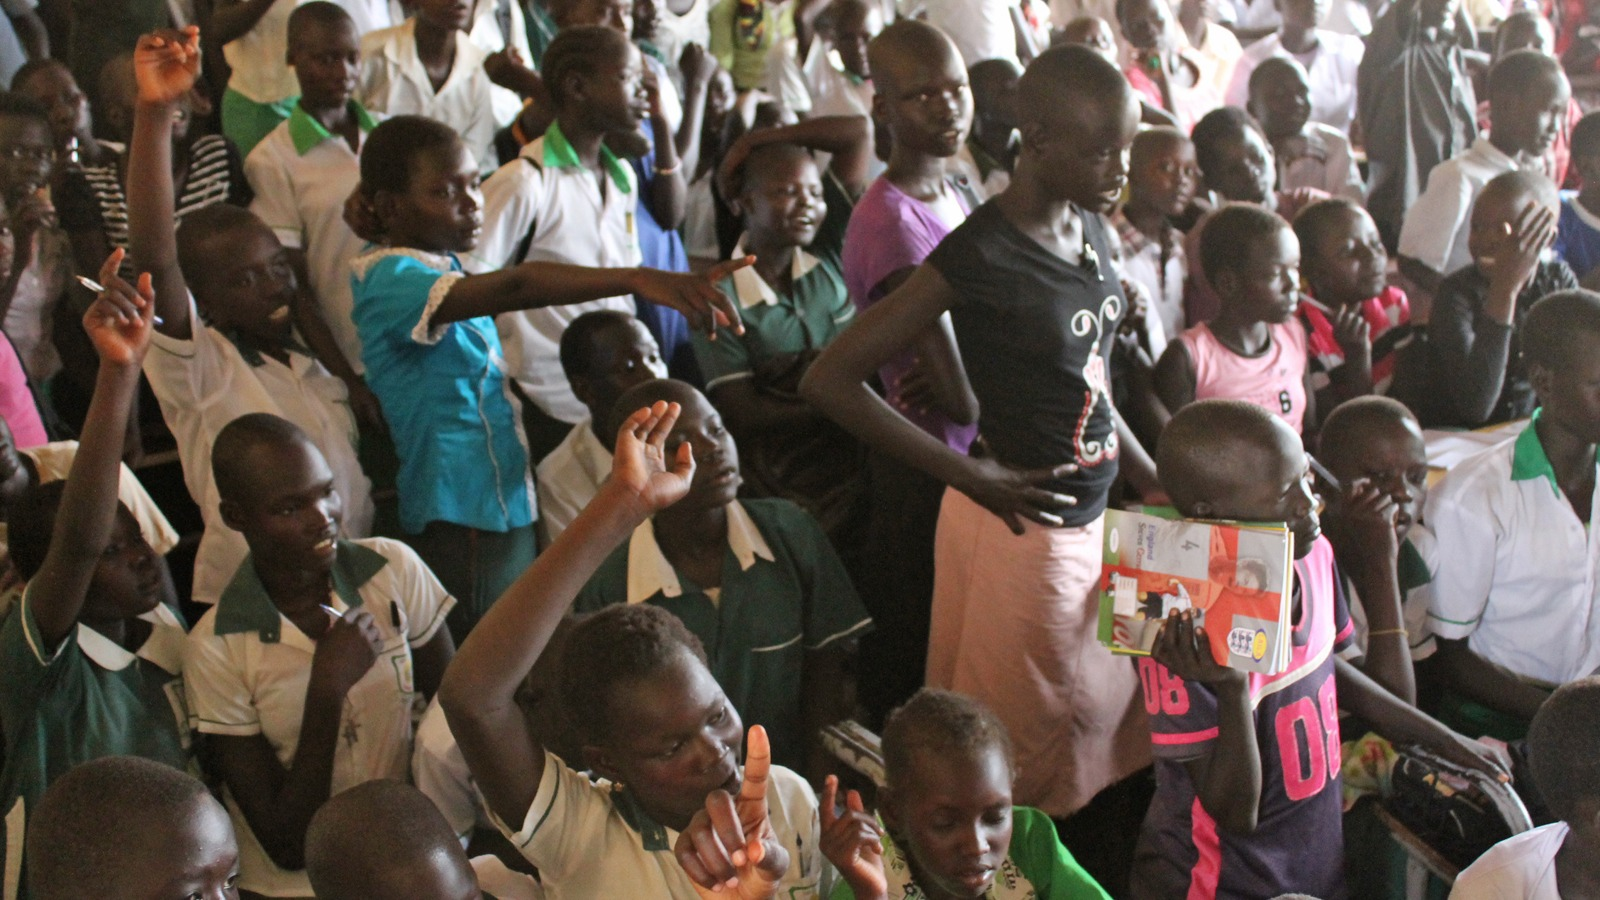 Over 300 children in a P6 class in Gudele East Primary School, Juba. (Apr 2014)